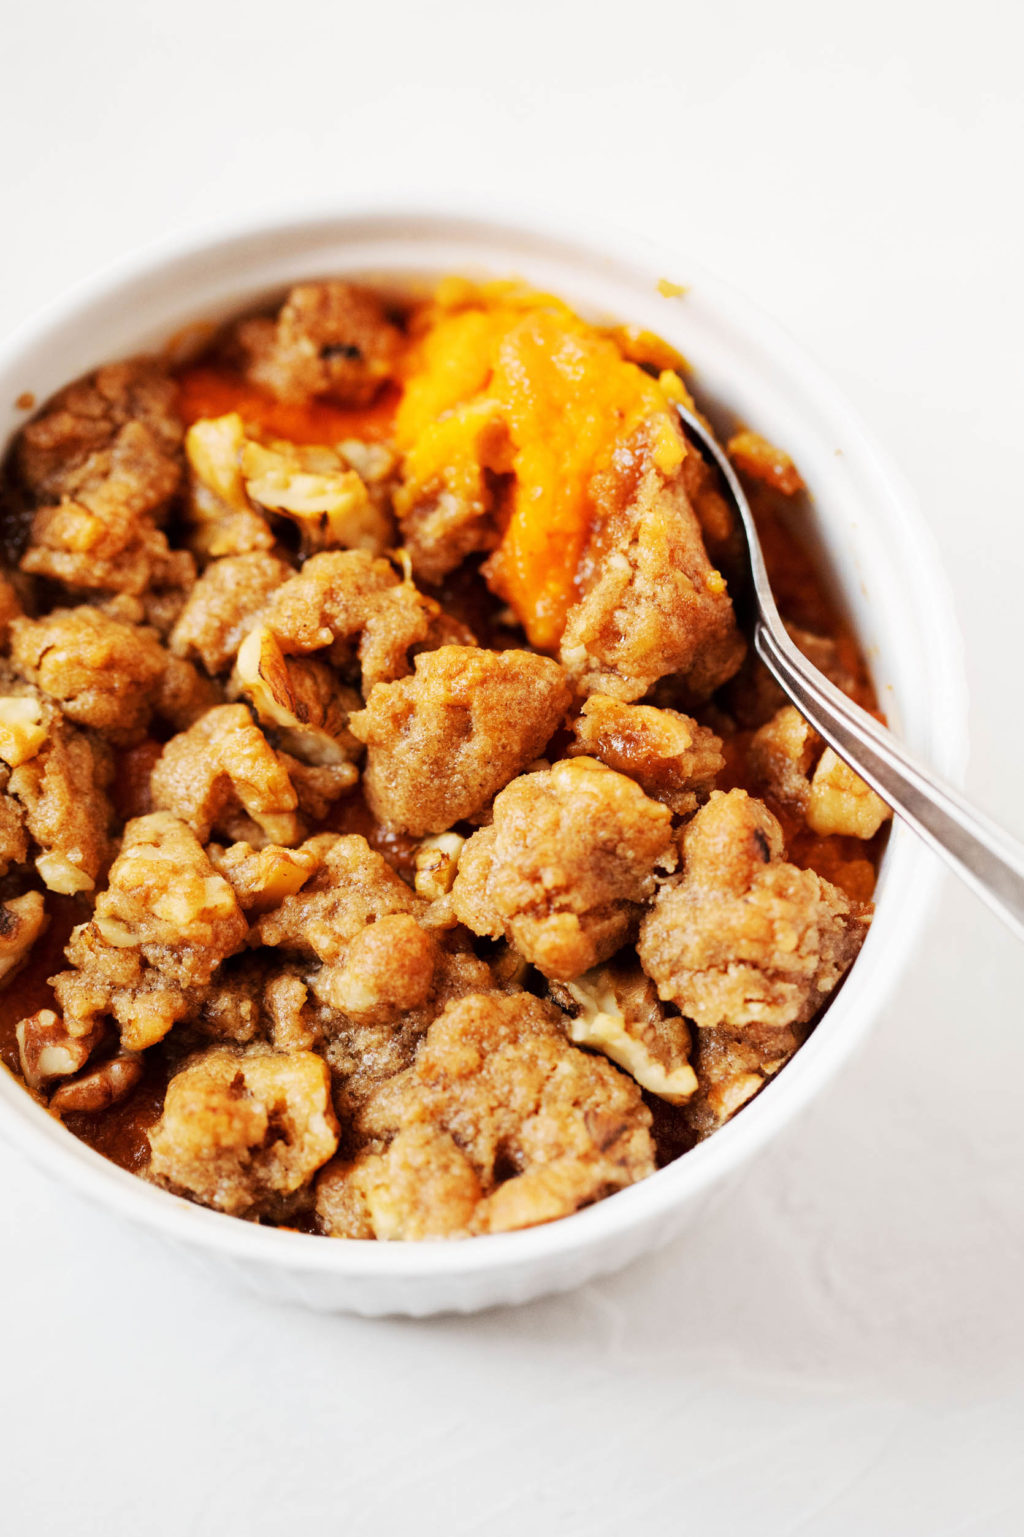 A small, circular baking dish is filled with a miniature version of vegan sweet potato casserole.